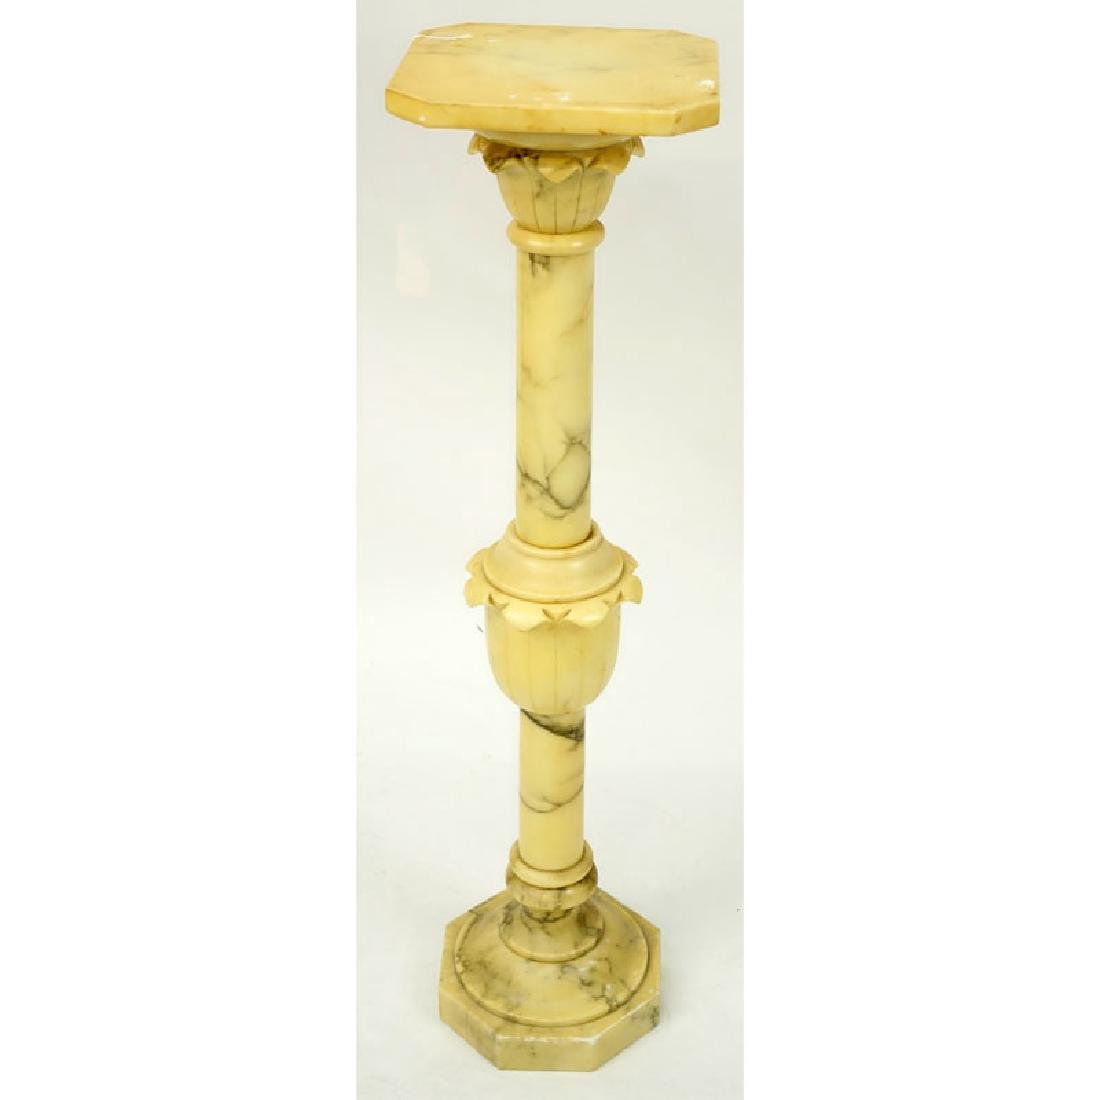 Carved Alabaster Pedestal. Unsigned. Wear and small